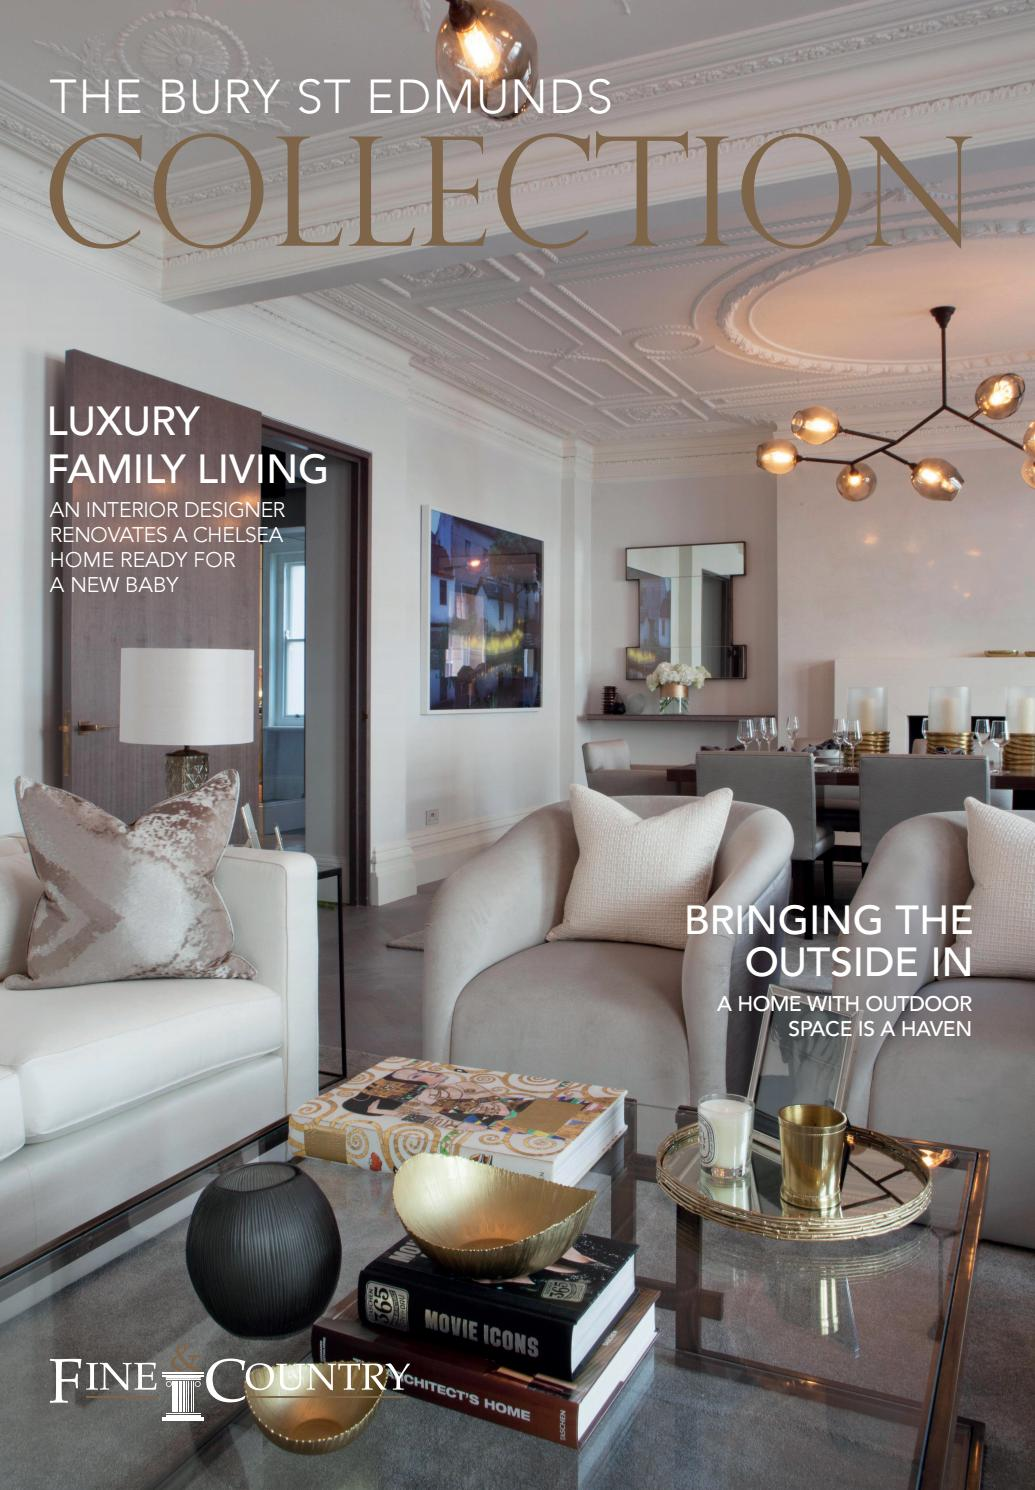 the bury st edmunds collection by fine country issuu